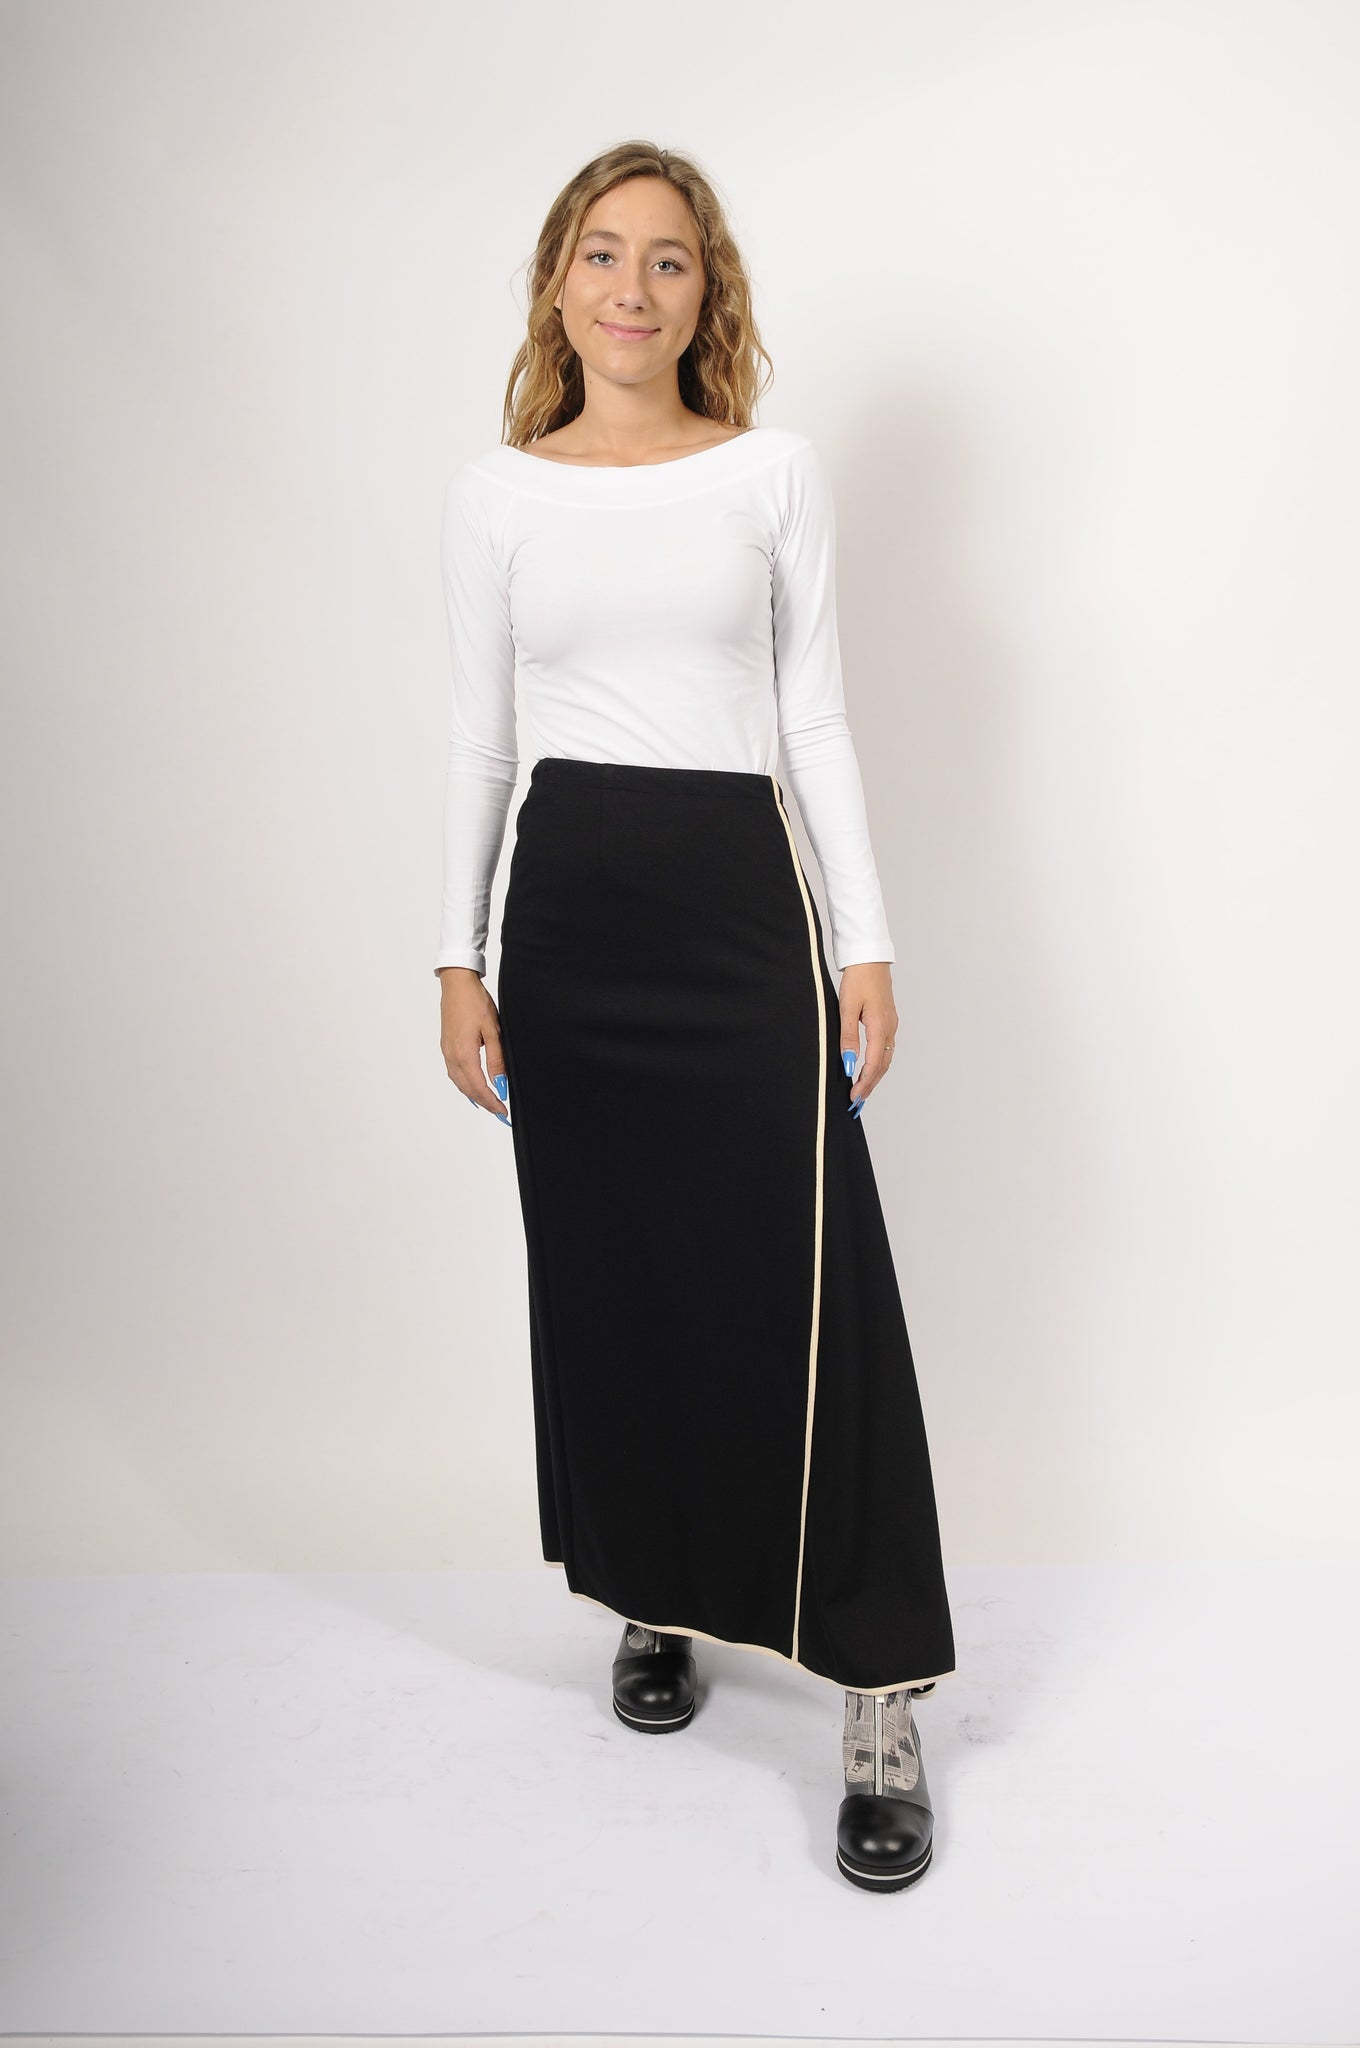 NY 77 Design Pipe Skirt - 2 - | ATELIER957 | shop sale items from hand-picked, statement clothing, shoe, and accessory collections up to 70 percent off